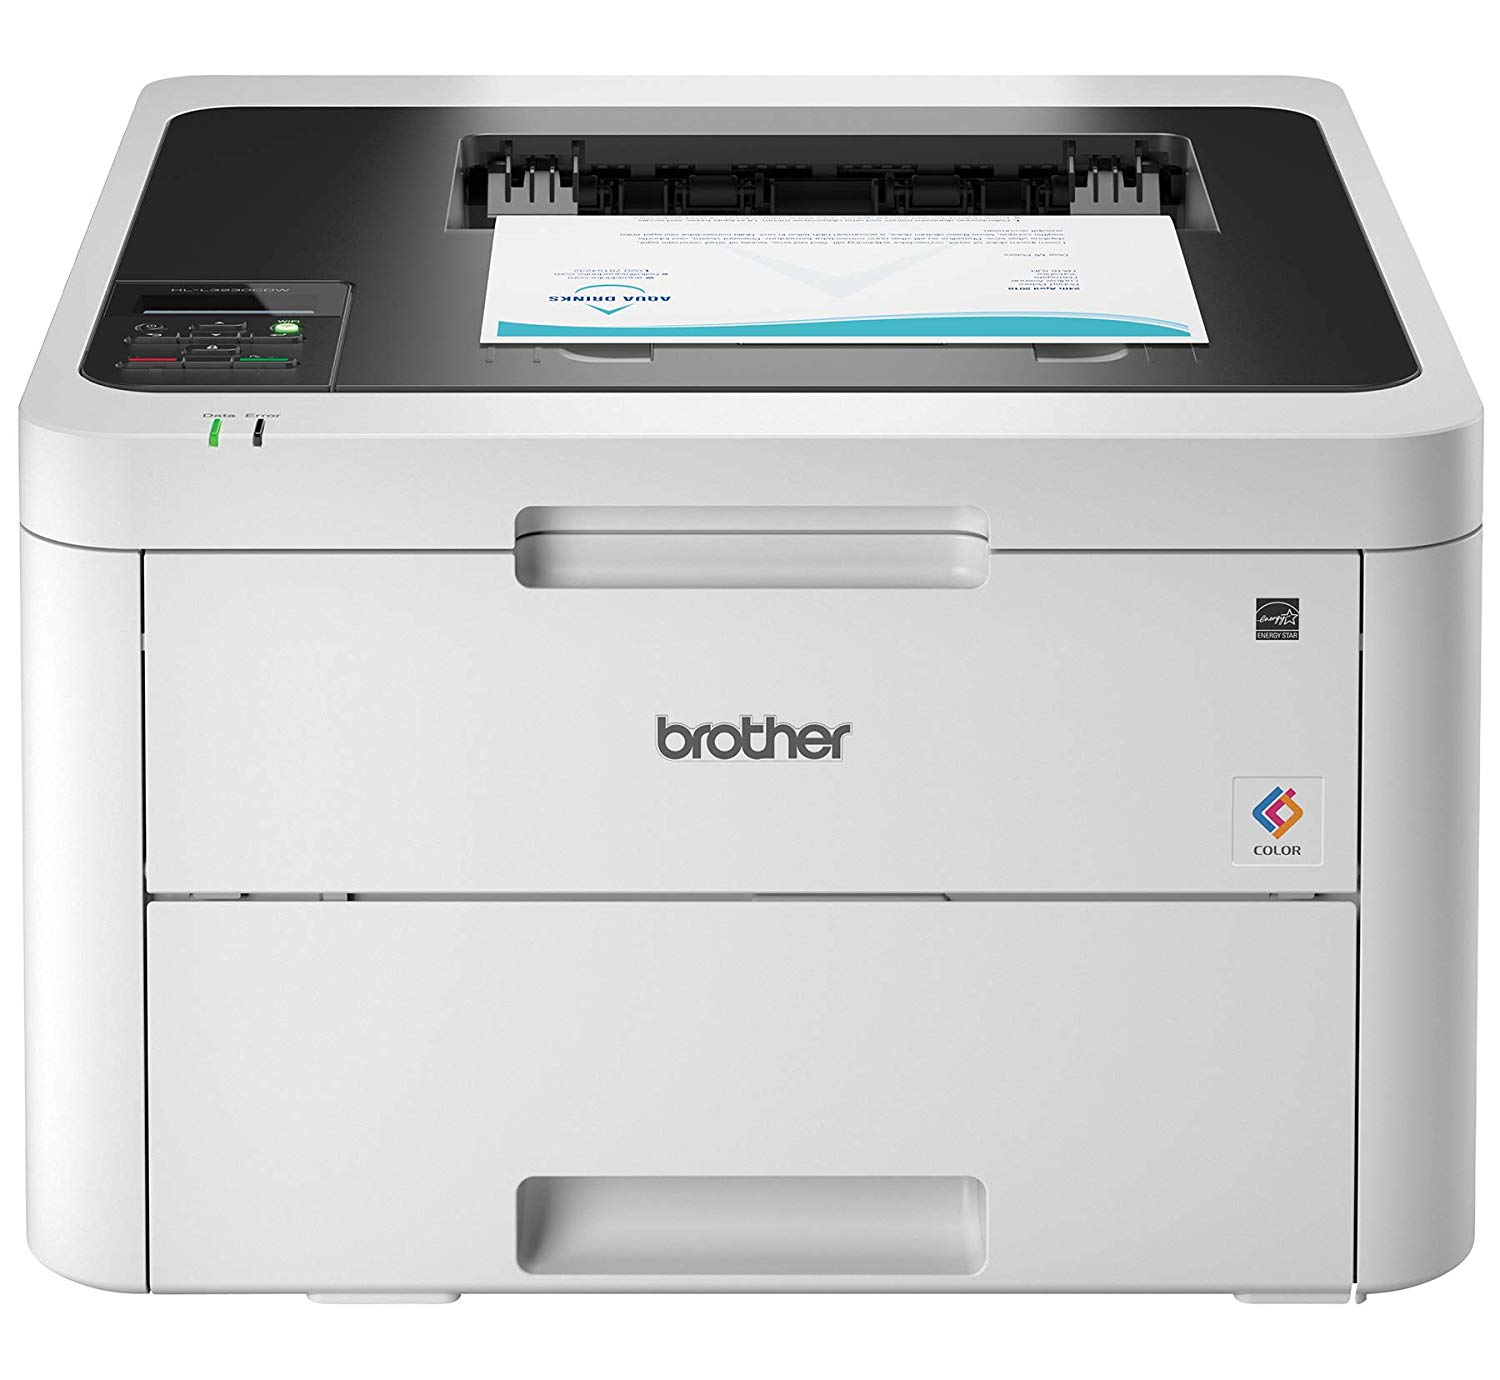 Laser Printers Brother HLL3230CDW A4 Colour Laser Printer